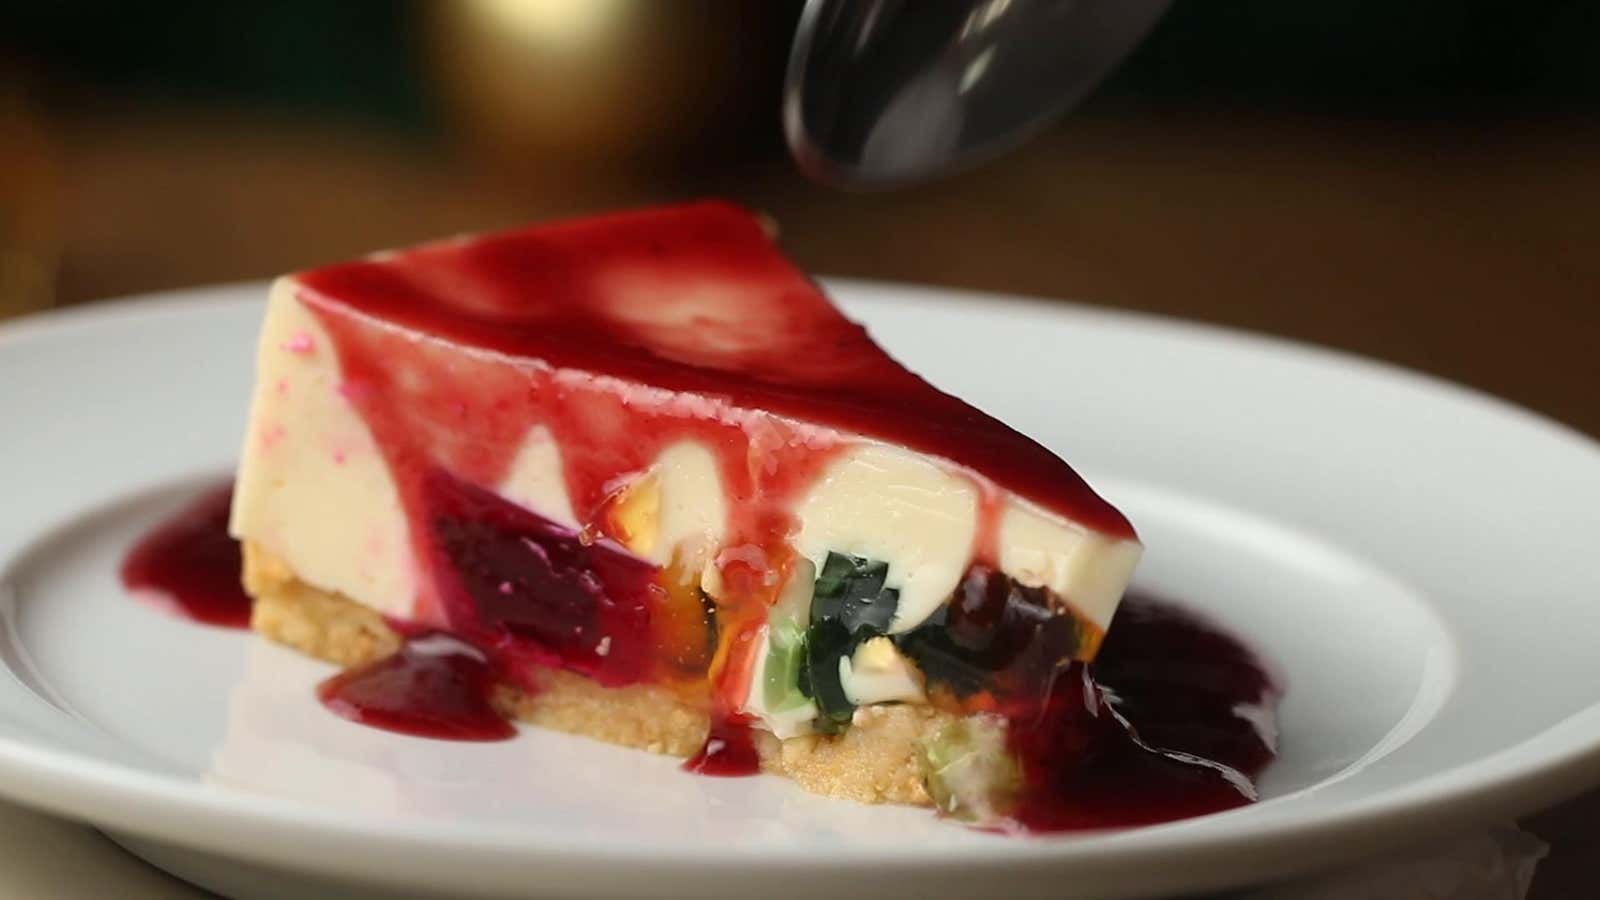 Colorful Gelatin Cheesecake